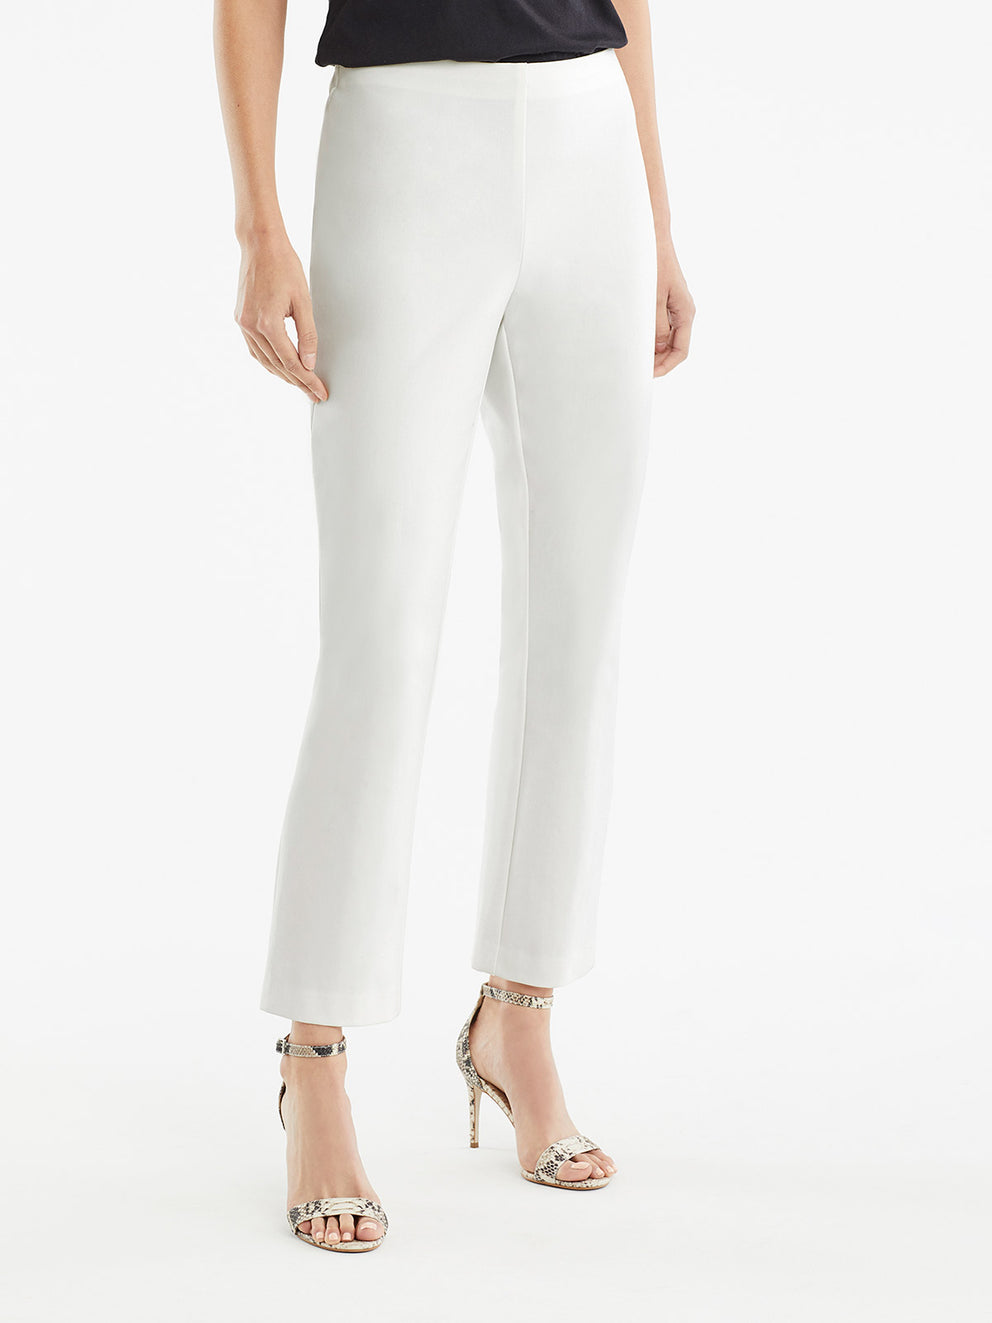 The Jones New York Clean Pull-On Pant in color Ivory - Image Position 2